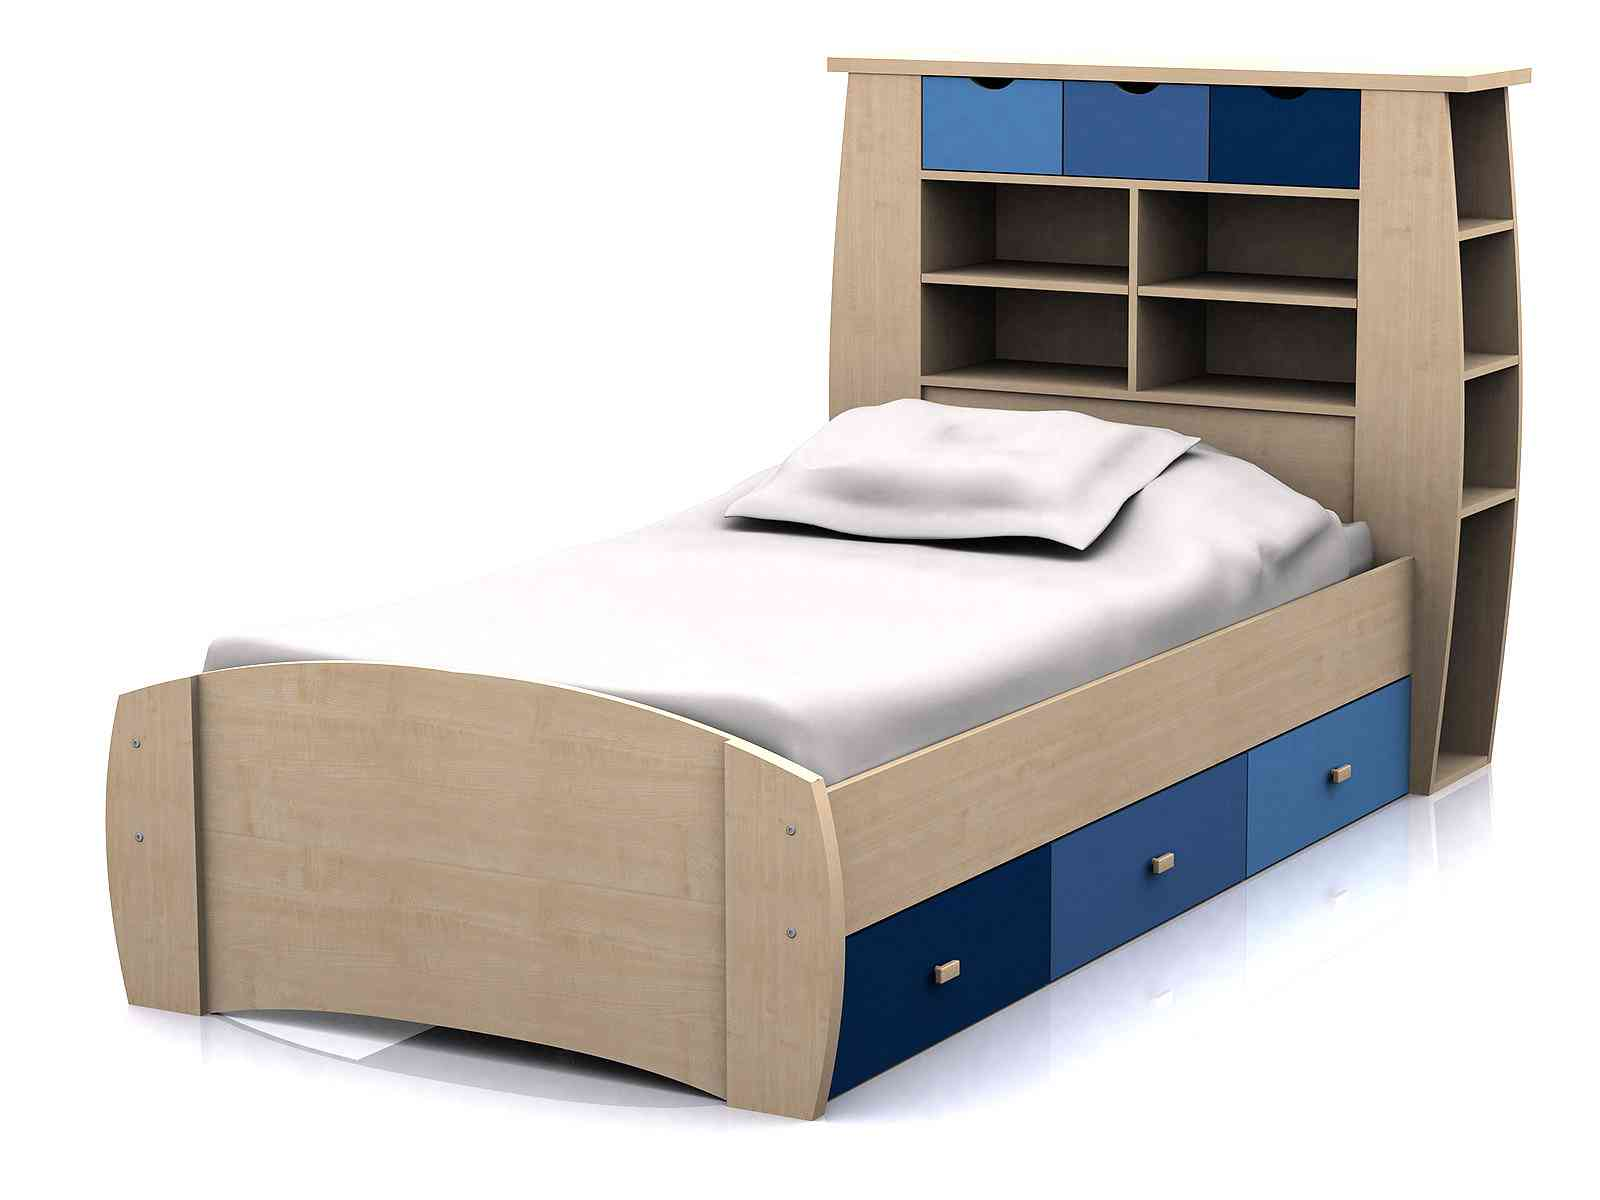 Furniture Storage Sydney Gfw The Furniture Warehouse Sydney 3 Storage Bed